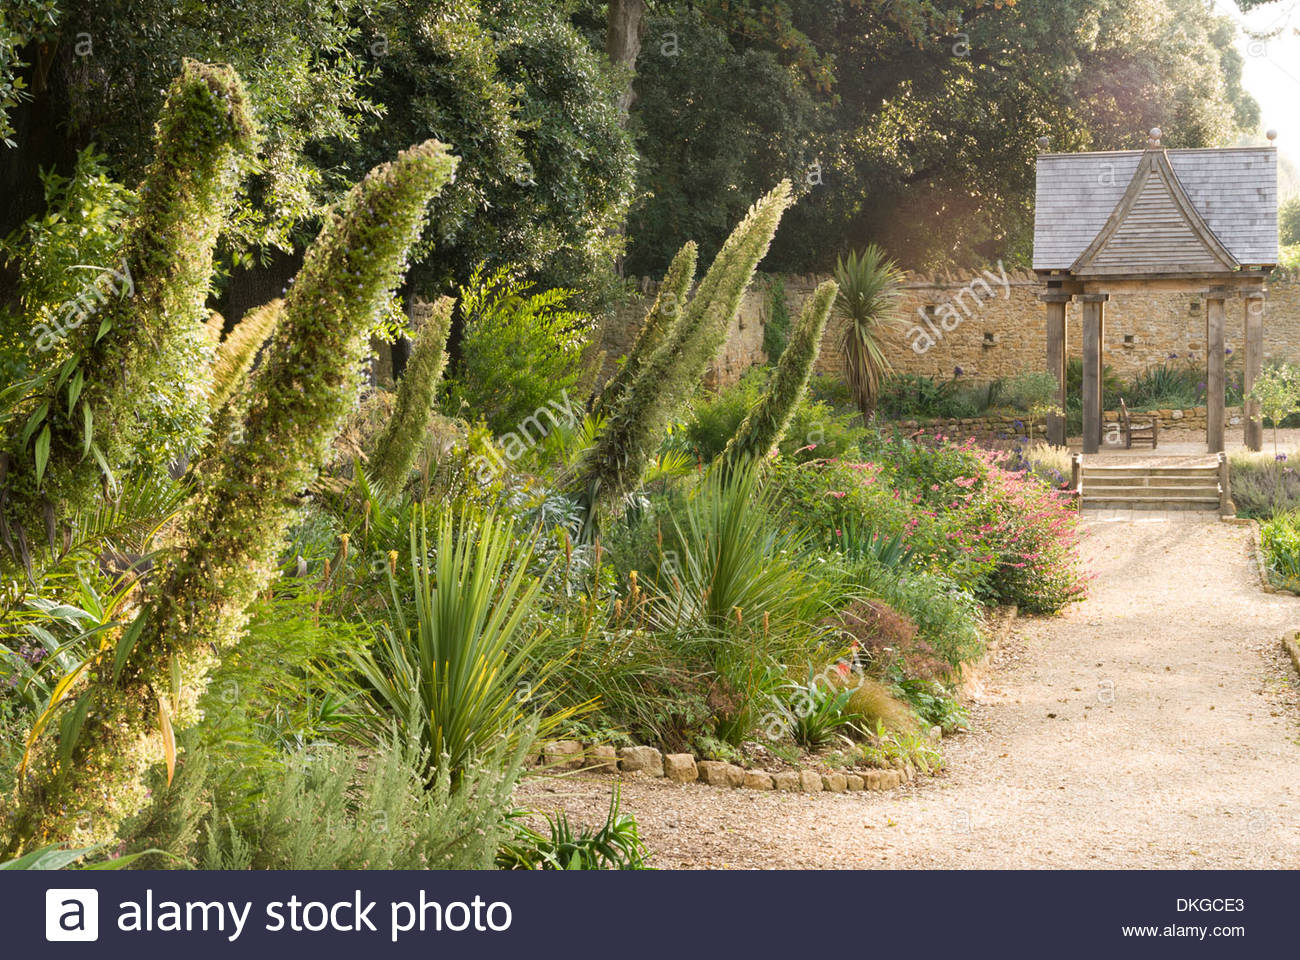 Good Mixed Border With The Pavilion As Focal Point, With Tall Echium Pininiana  And Other Tender Plants. Abbotsbury Subtropical Garden